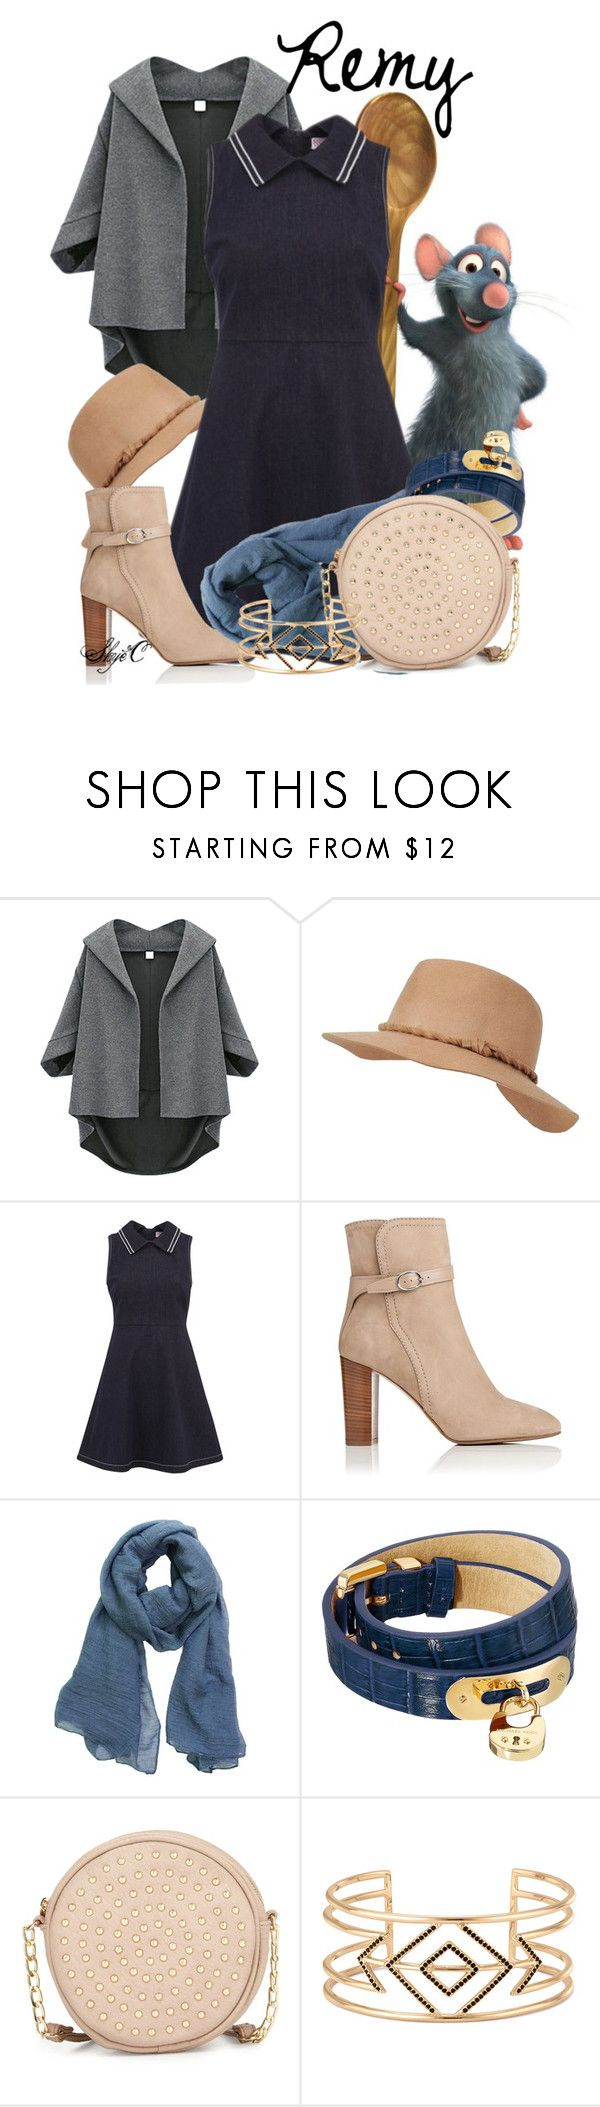 """""""Remy - Disney Pixar's Ratatouille"""" by rubytyra ❤ liked on Polyvore featuring RED Valentino, L.K.Bennett, Michael Kors, Neiman Marcus and Stella & Dot"""